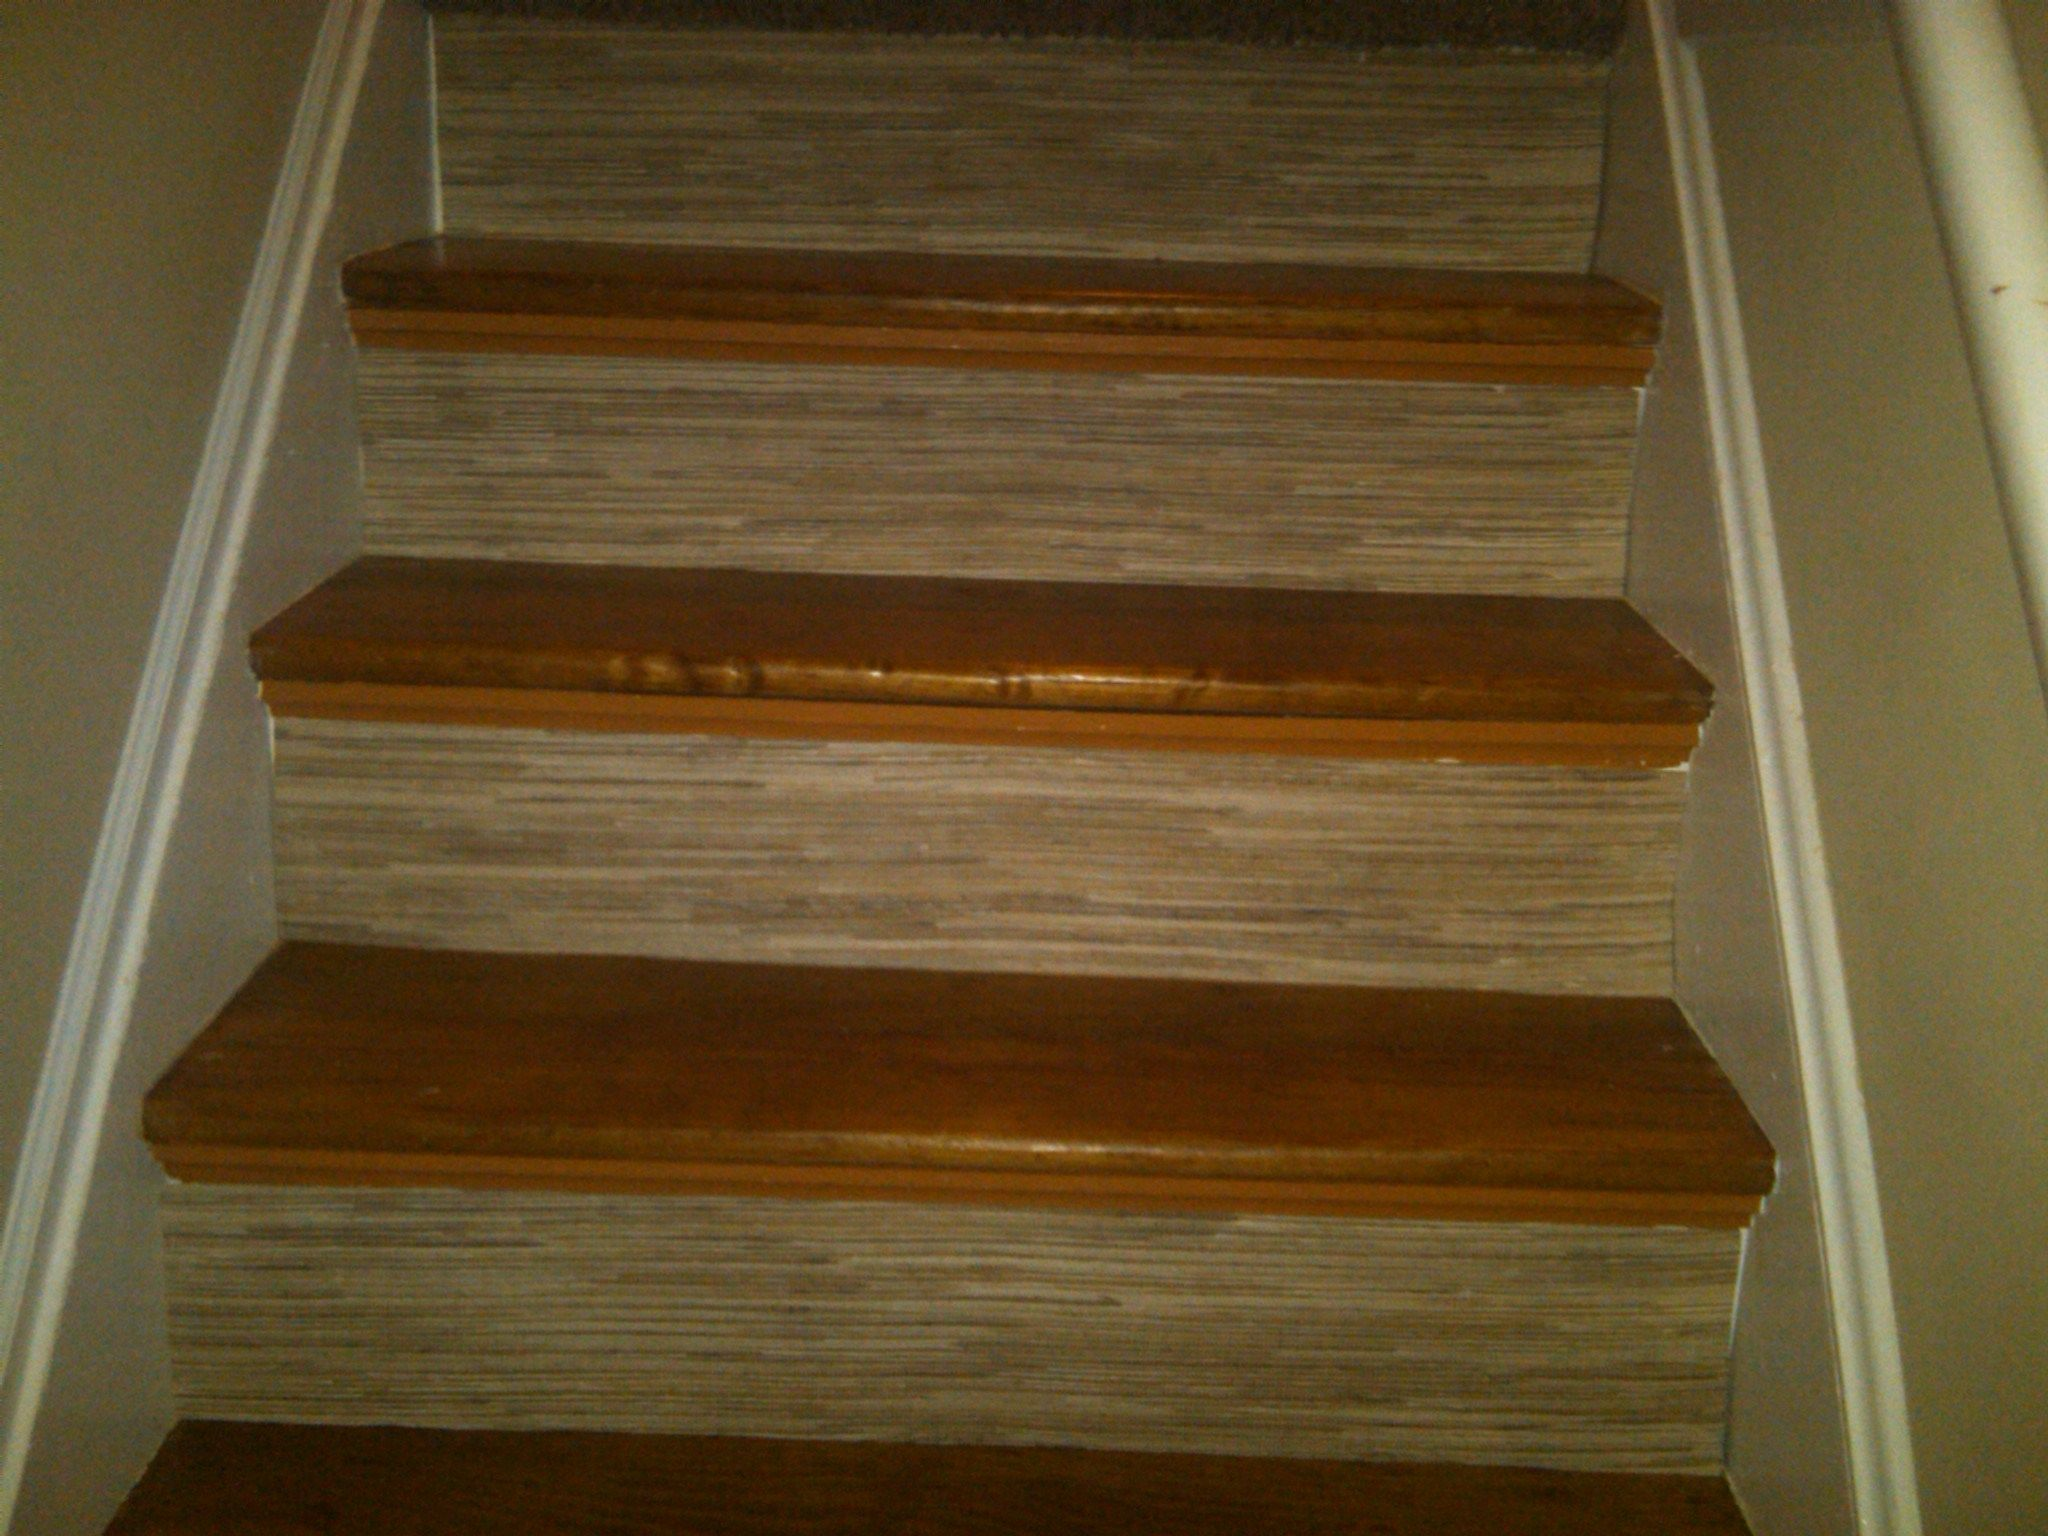 Wallpaper Stair Risers With Heavy Duty Grass Cloth Wallpaper | Hardwood Steps And Risers | Gray Painted | Cherry Wood | Hardwood Floor | Timber | White